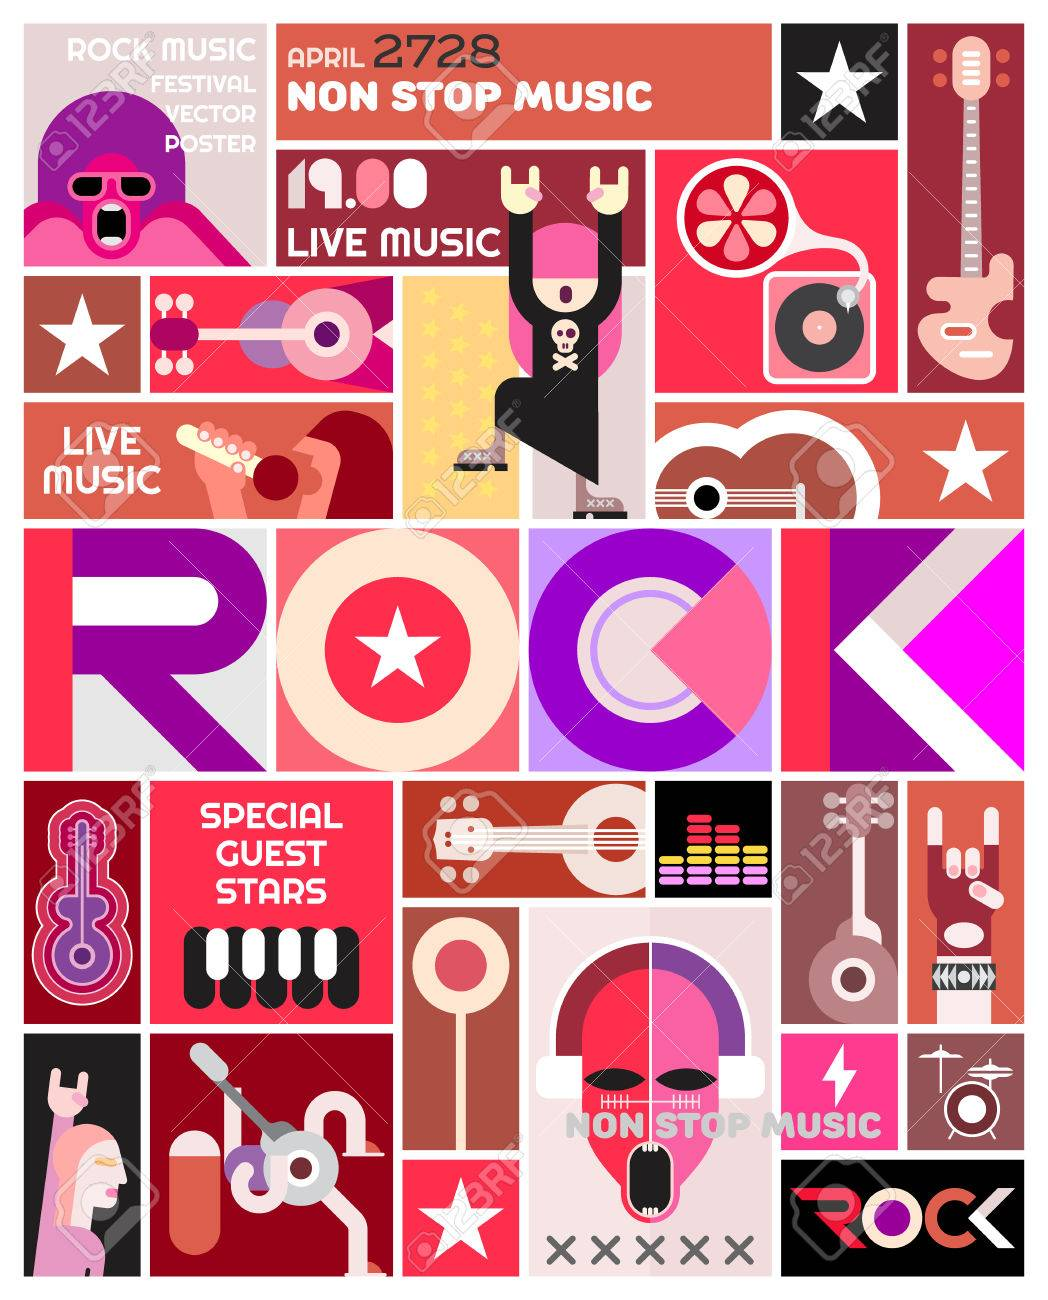 Rock Concert Poster Vector Template Design Art Collage Of Many Different Pictures And Text Composition